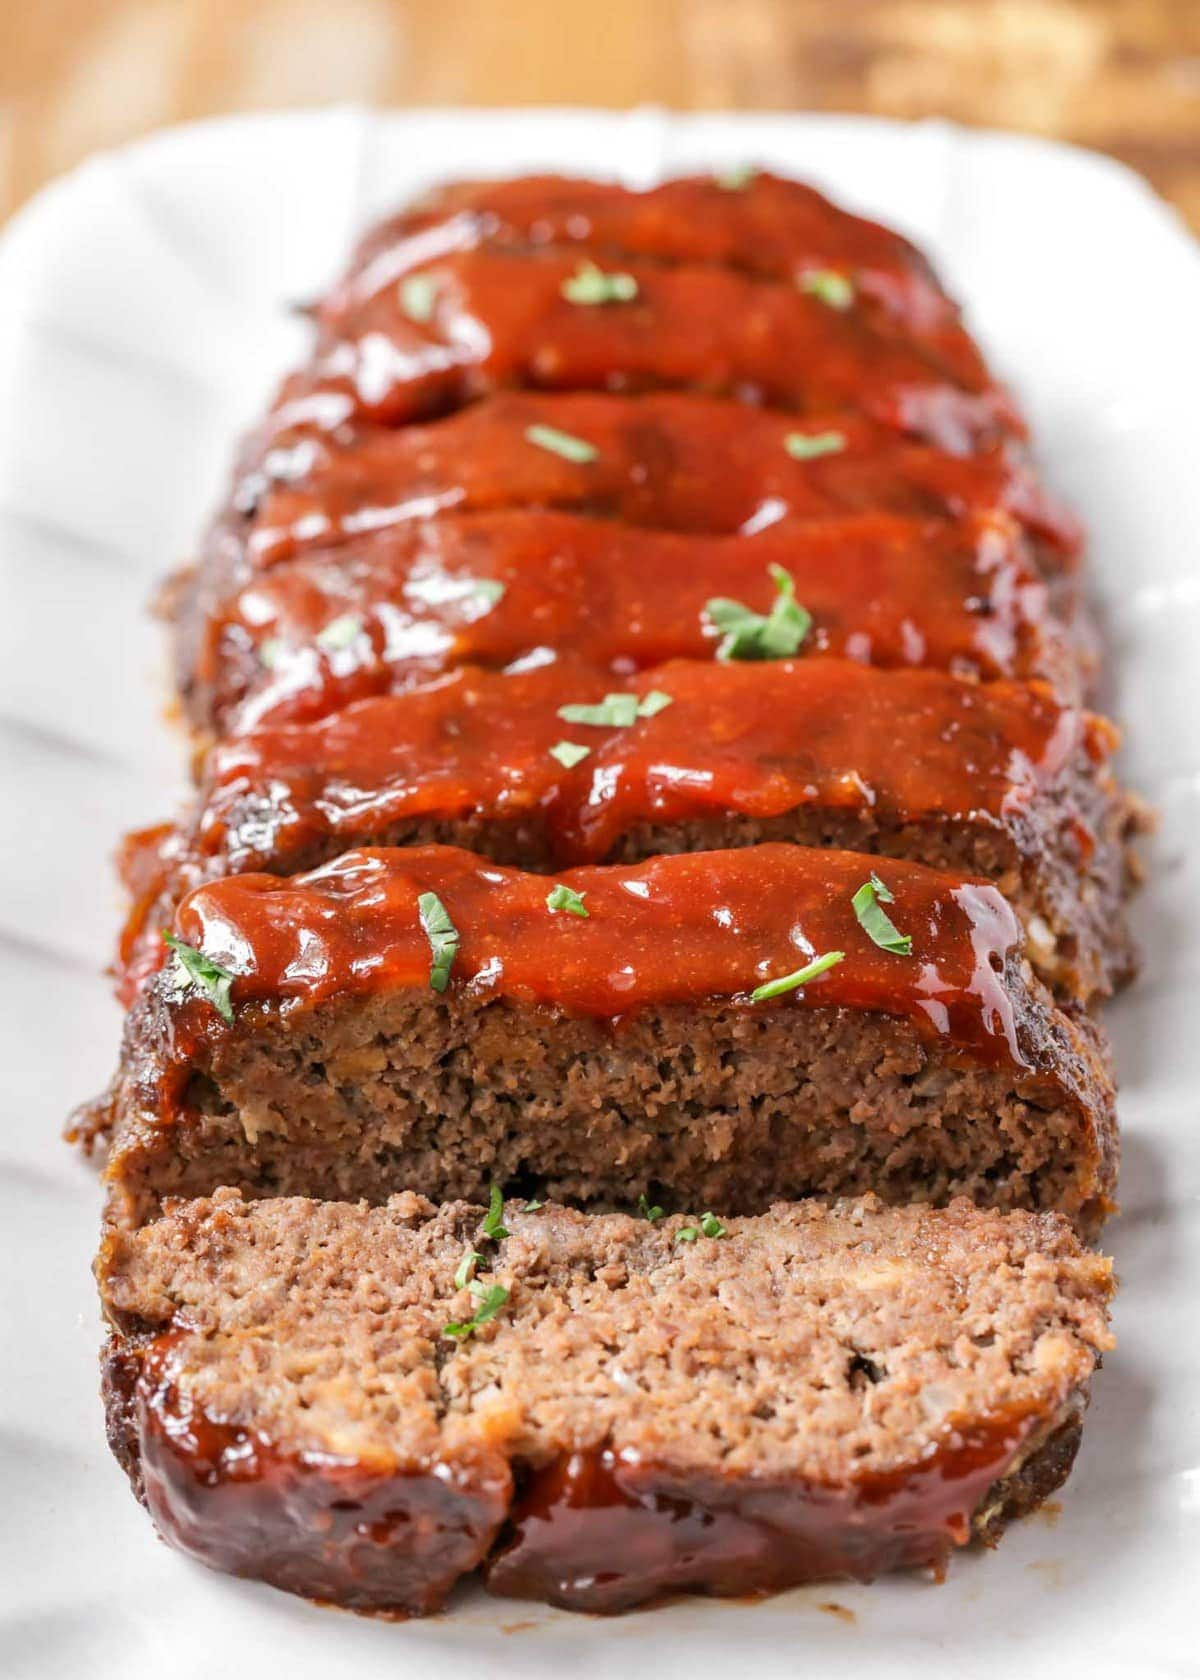 Homemade meatloaf cut into slices on a serving platter